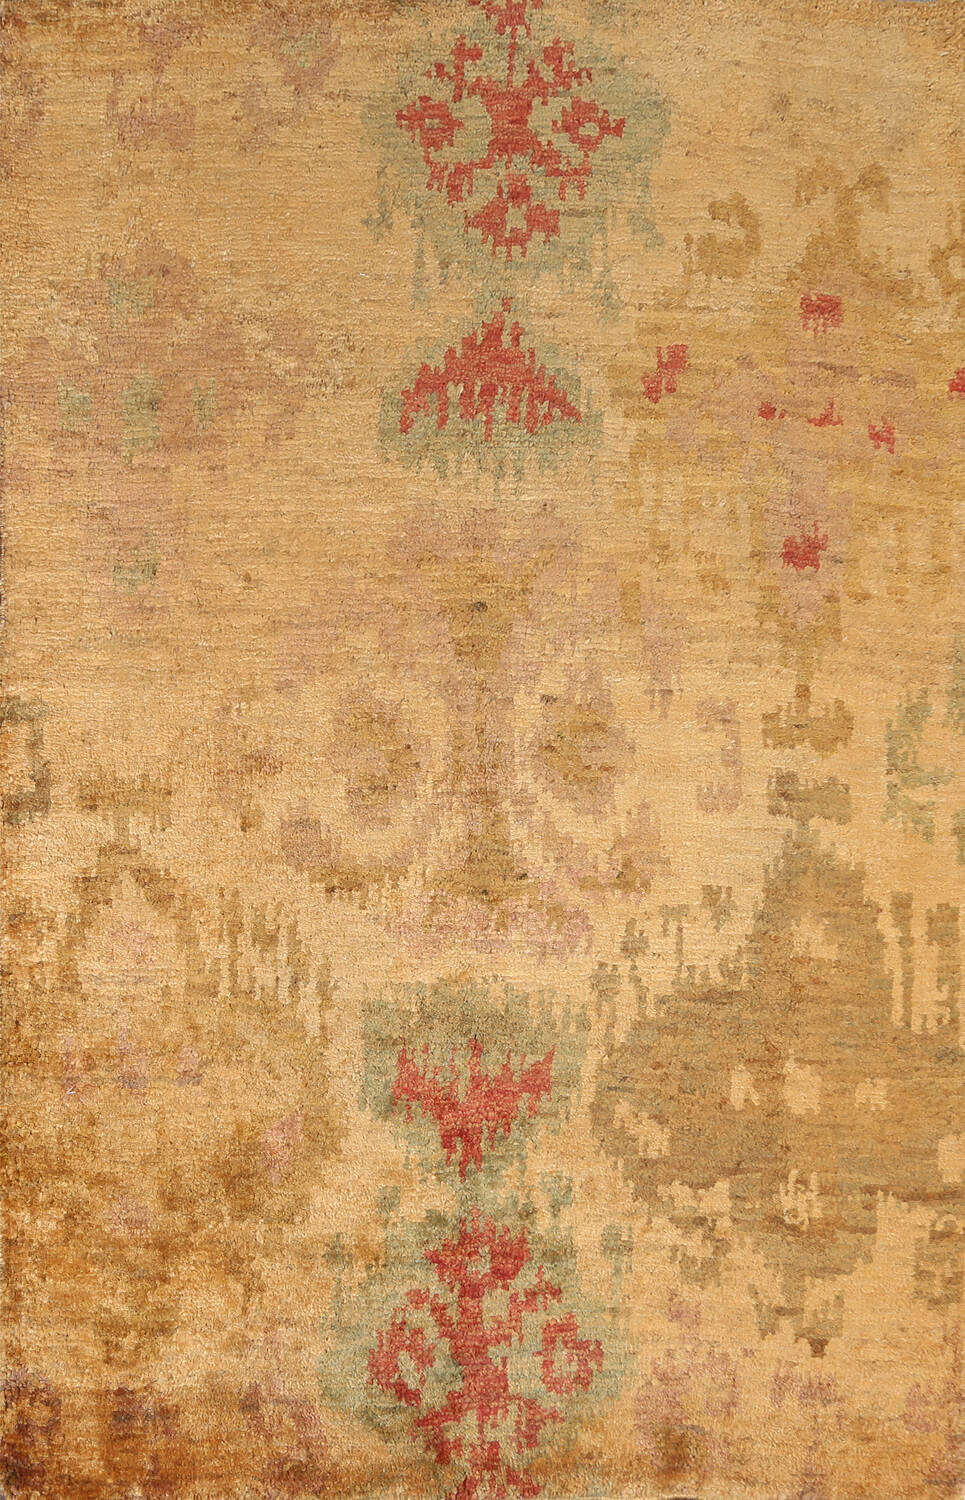 Abstract Oriental Area Rug 6x8 image 1